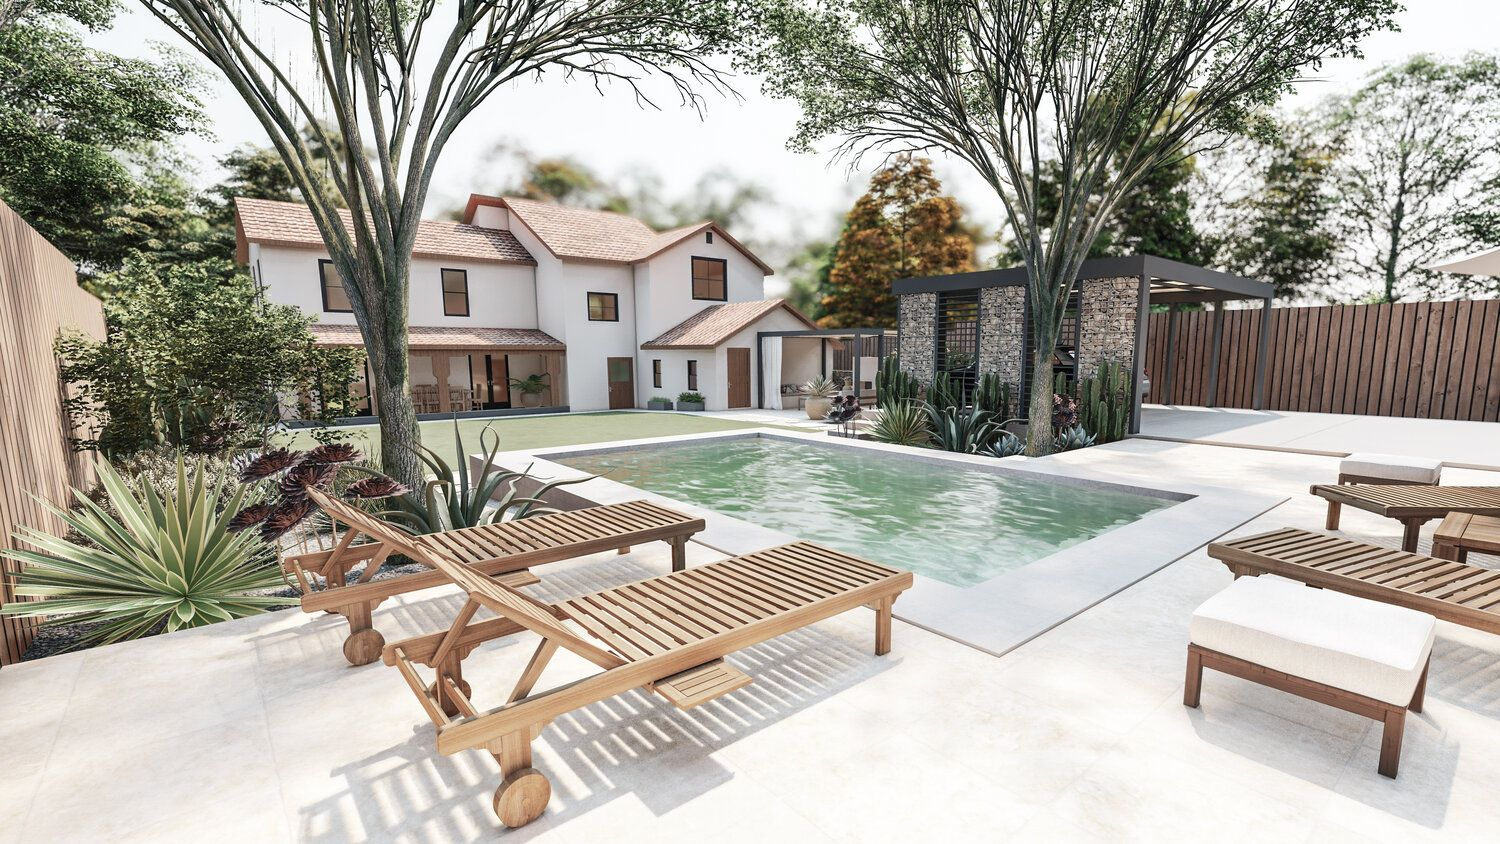 Modern Backyard With A Small Pool Online Landscape Design Backyard Design Landscape Design Small